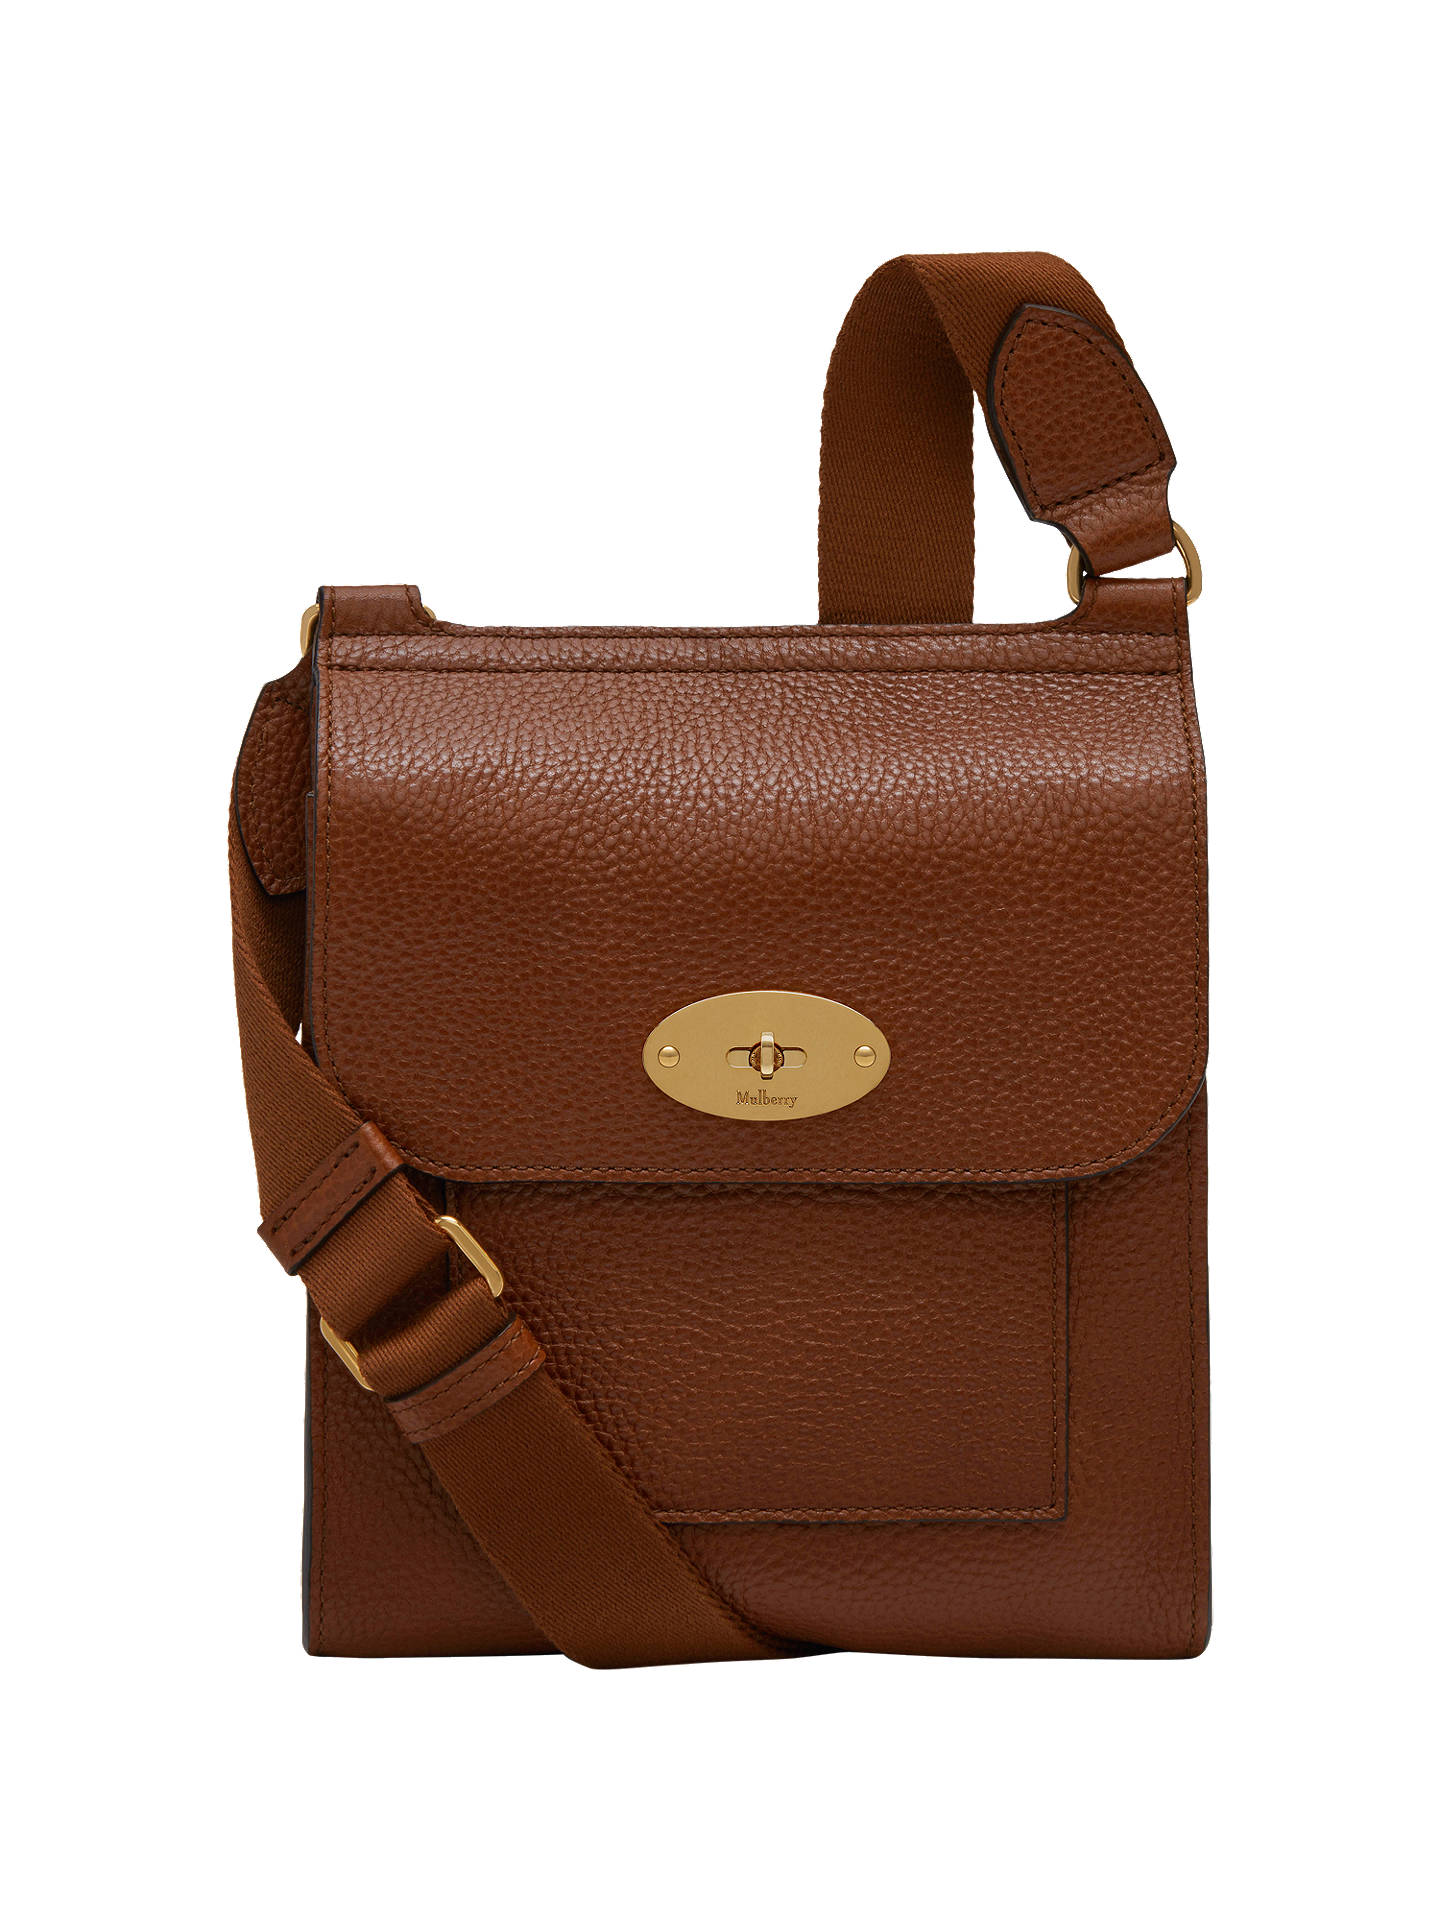 ad92ea26e19 Buy Mulberry Antony Grain Veg Tan Leather Small Satchel, Oak Online at  johnlewis.com ...